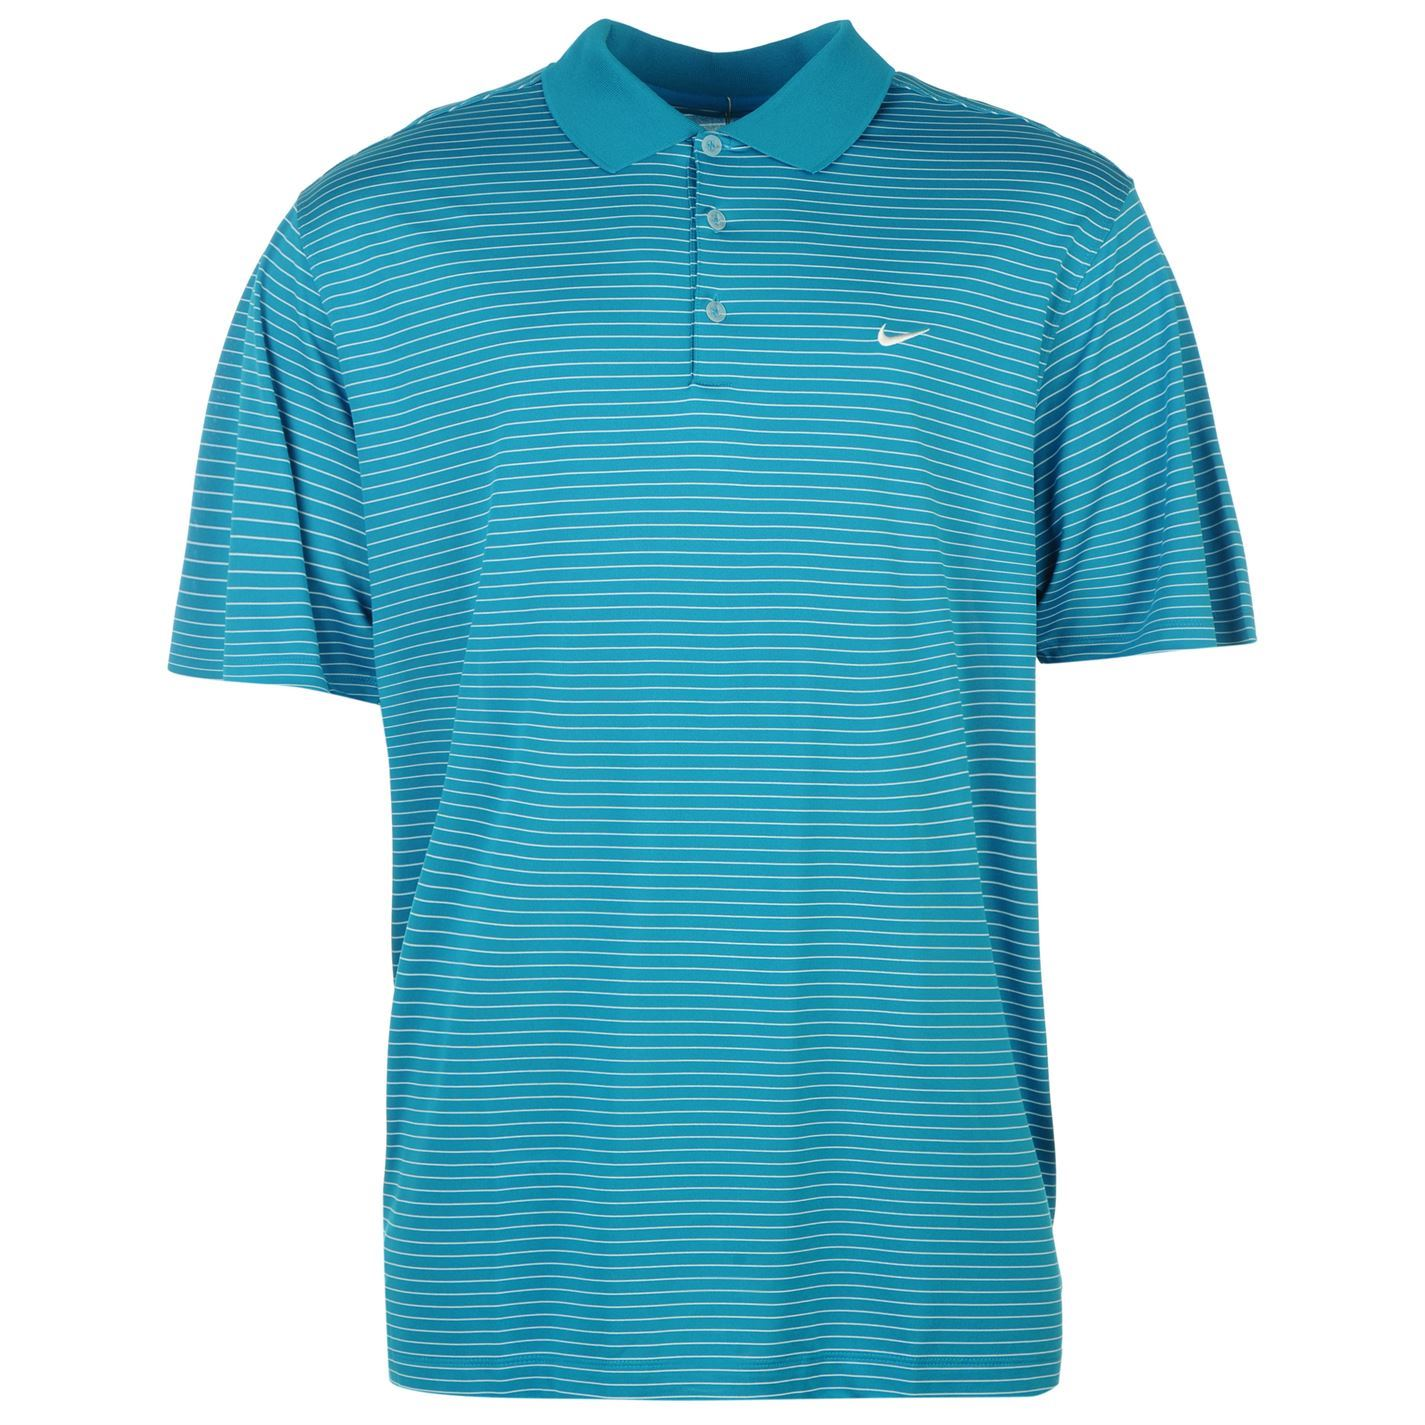 Nike victory stripe golf polo shirt mens light blue top t Light blue t shirt mens